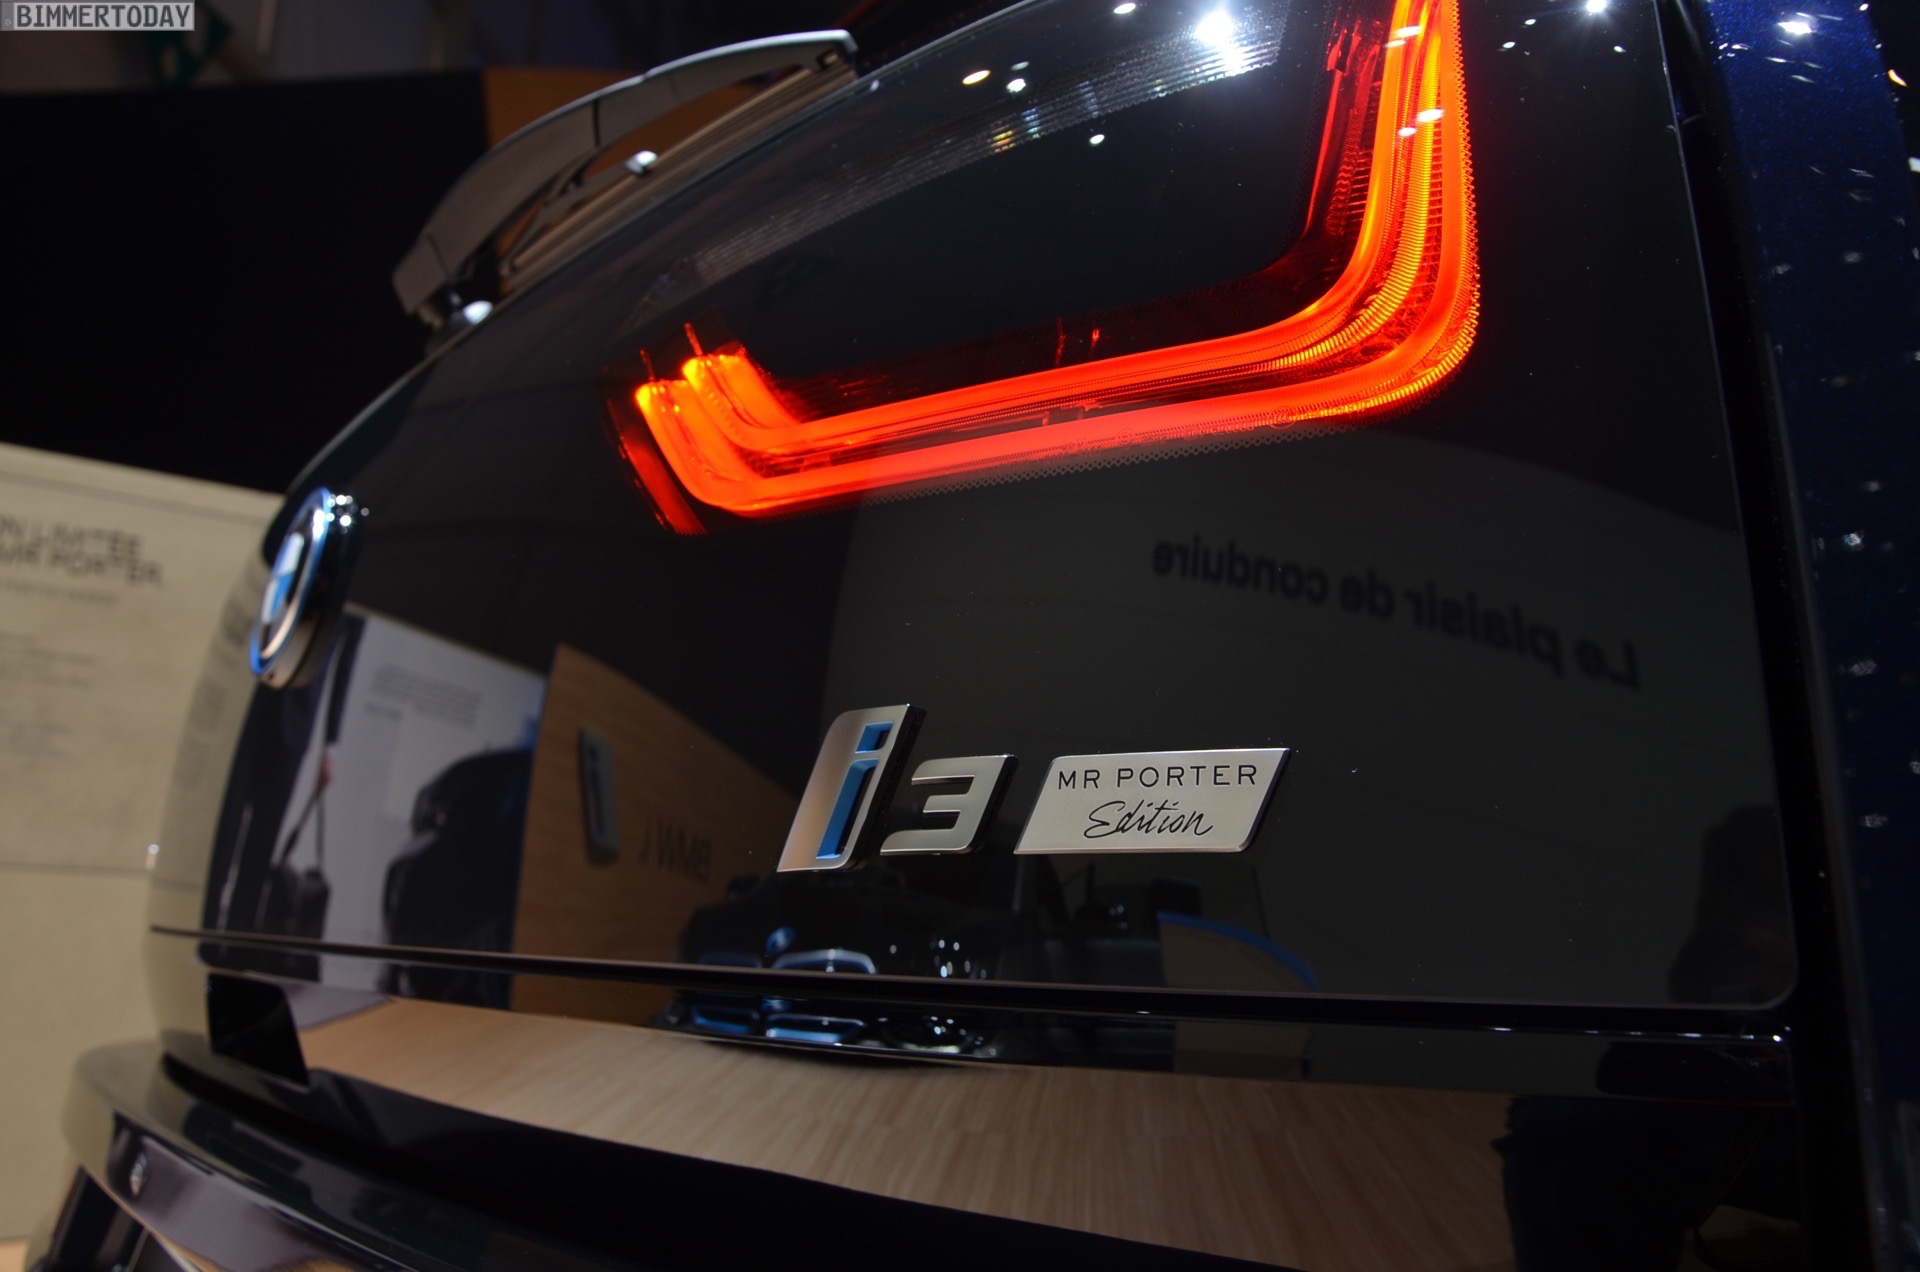 BMW i3 MR PORTER Design Limited Edition 2016 Genf Autosalon Live 03